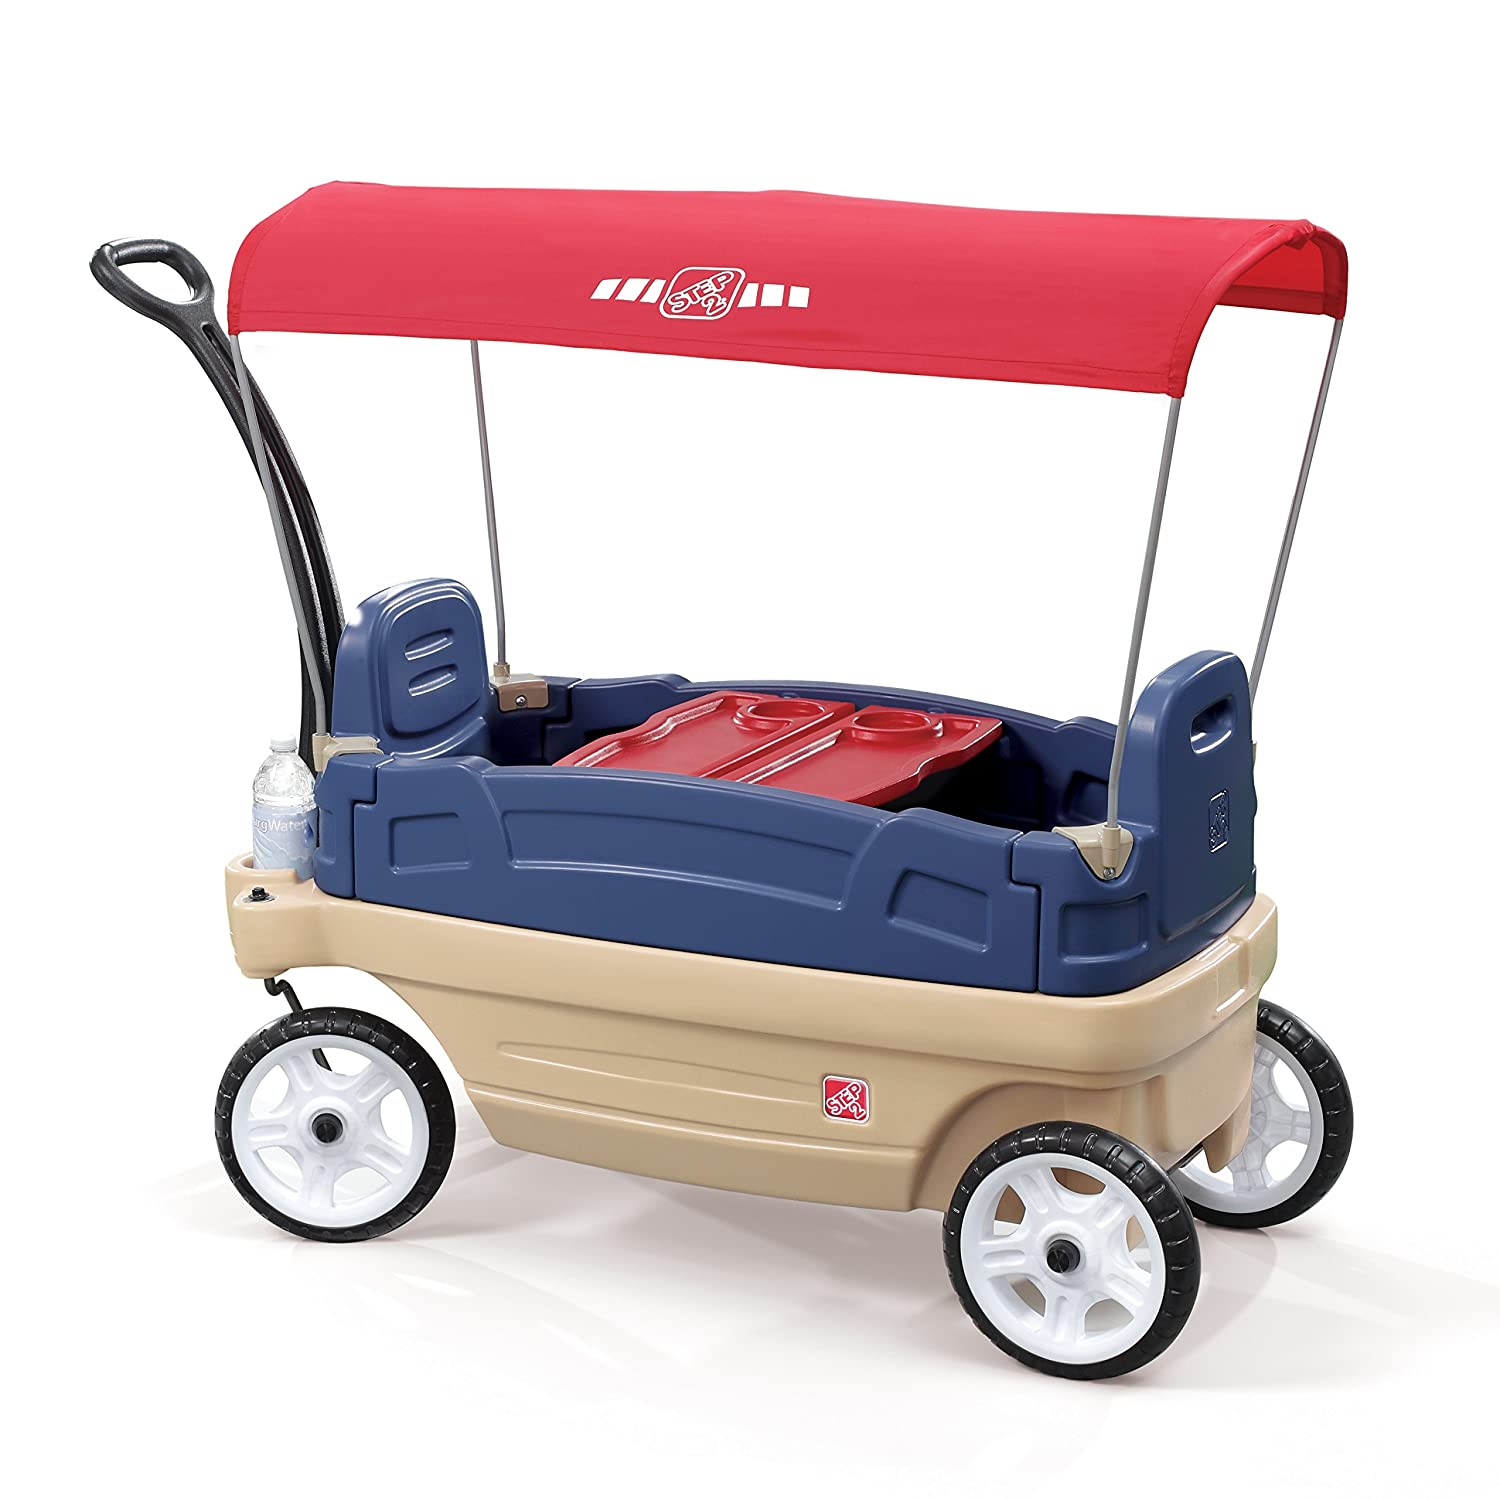 Top 10 Best Wagons for Kids Reviews in 2020 8